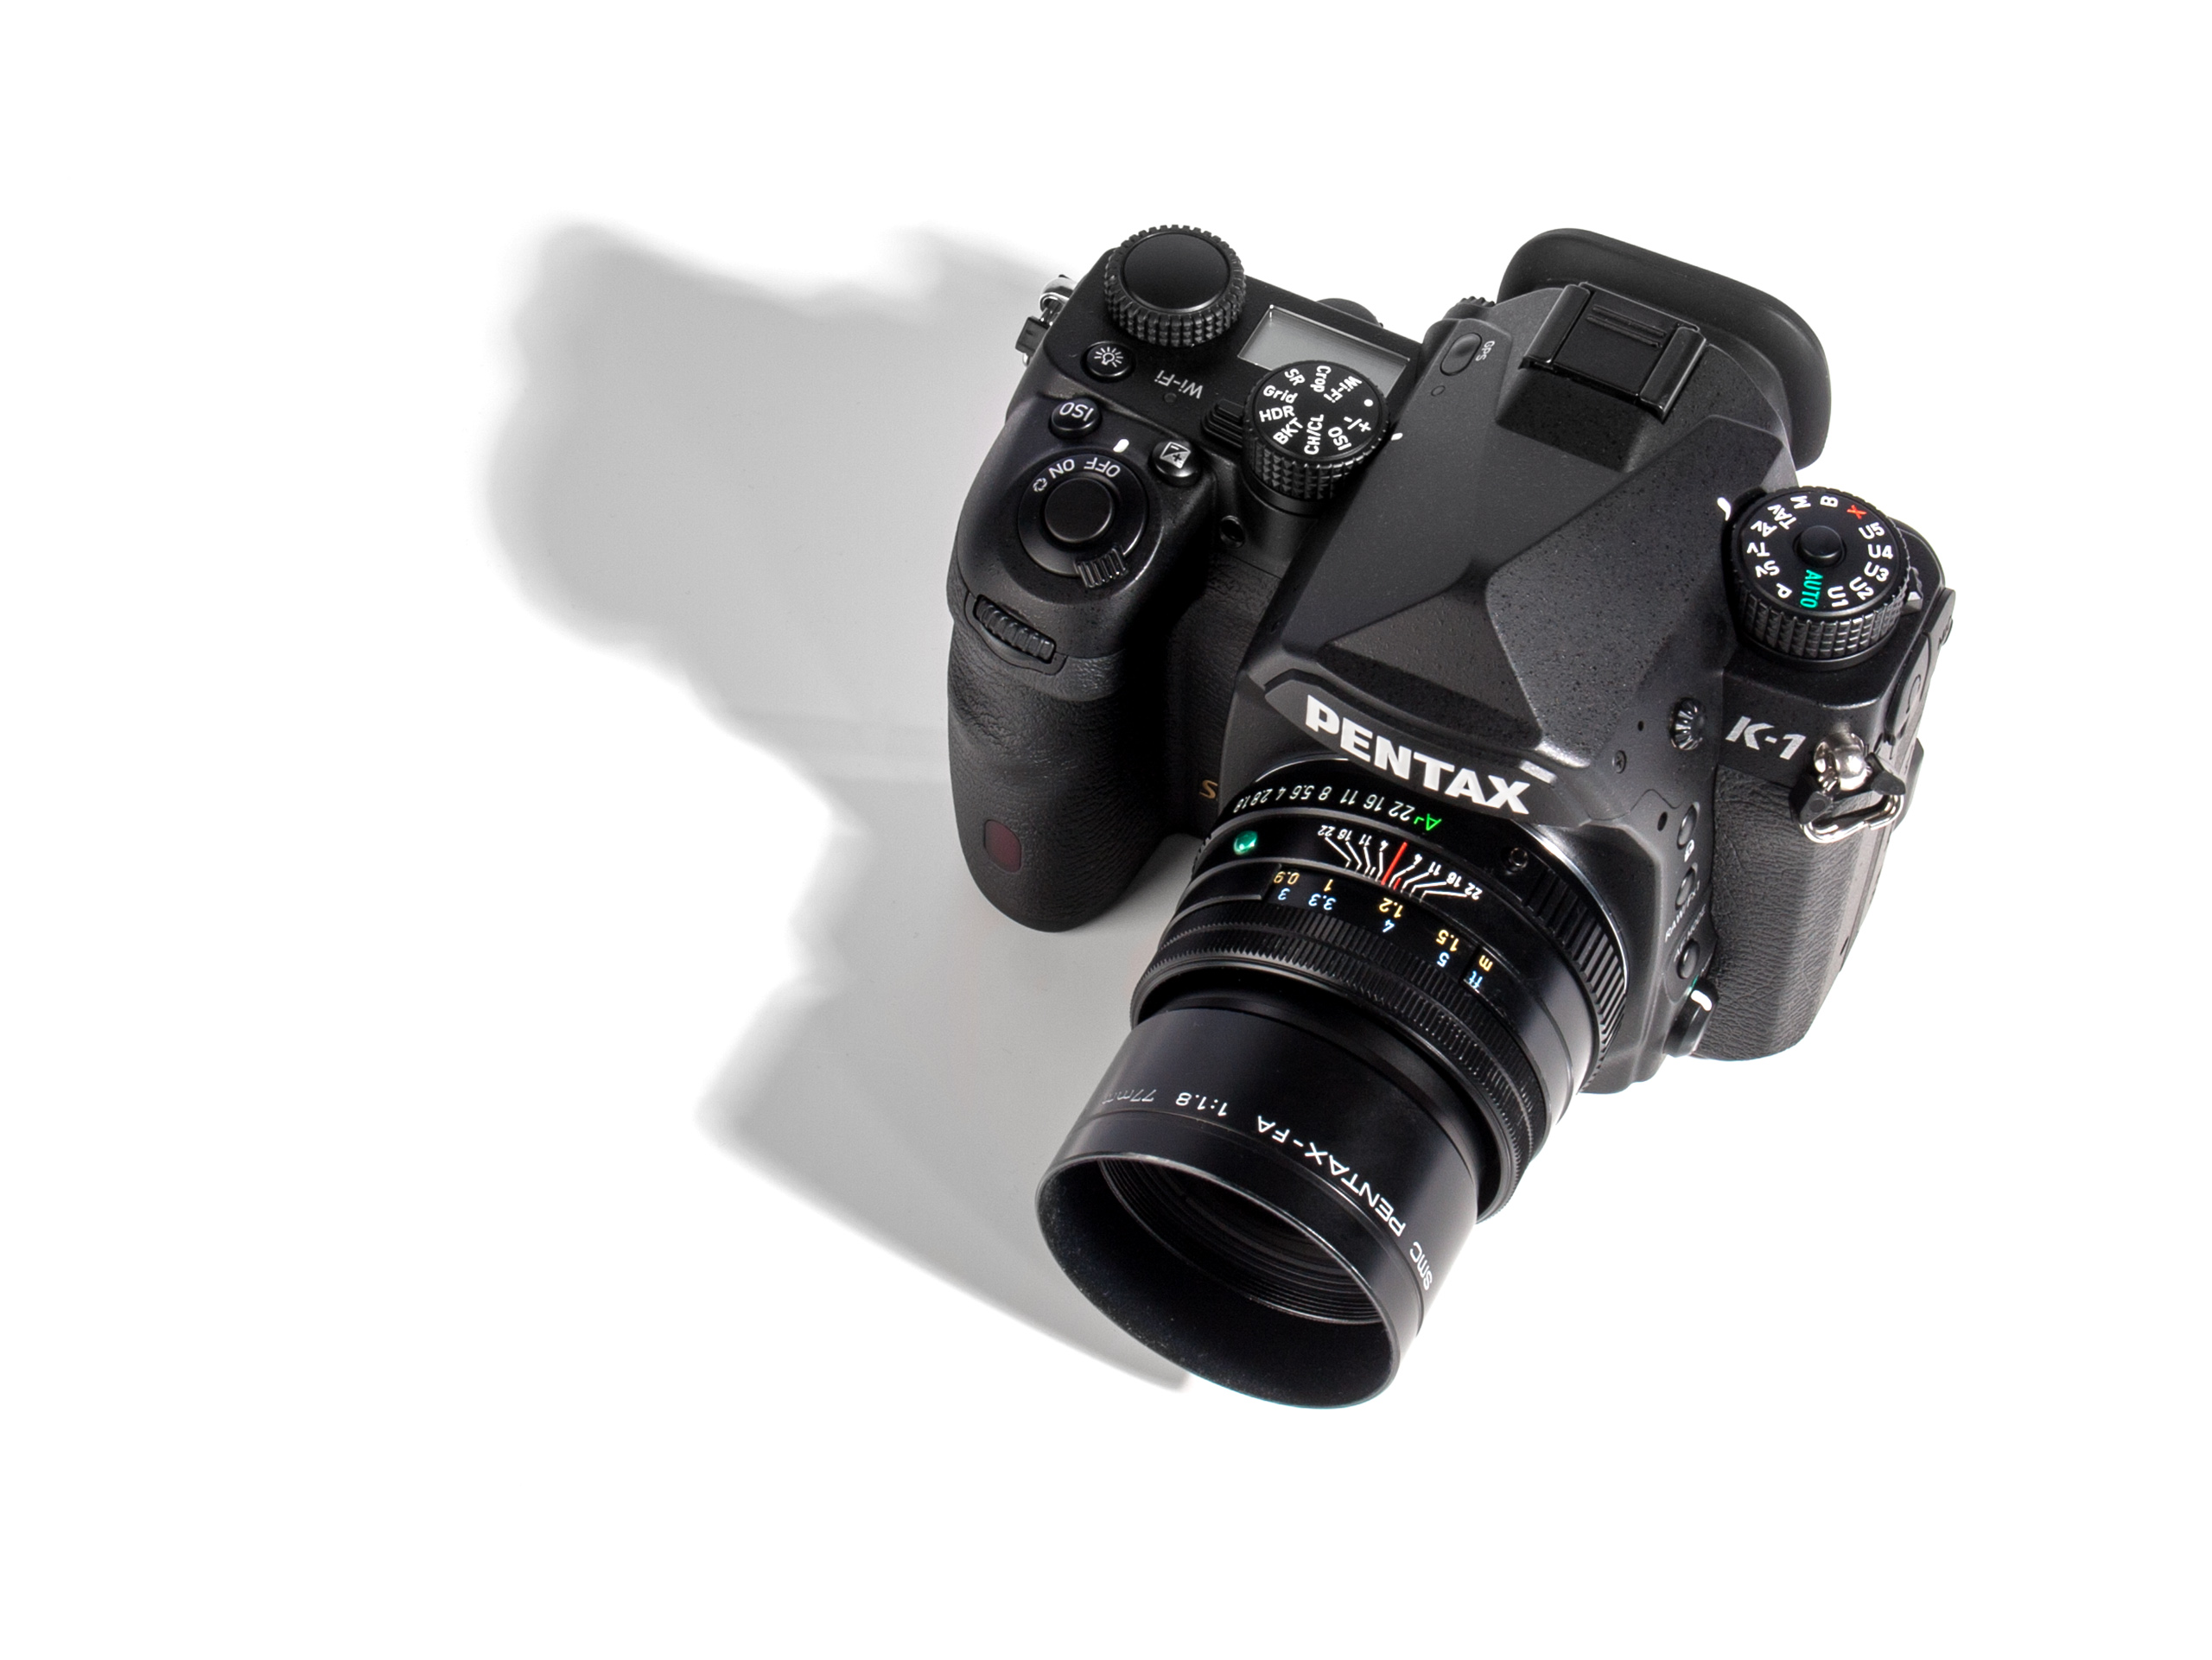 special k pentax k 1 review digital photography review